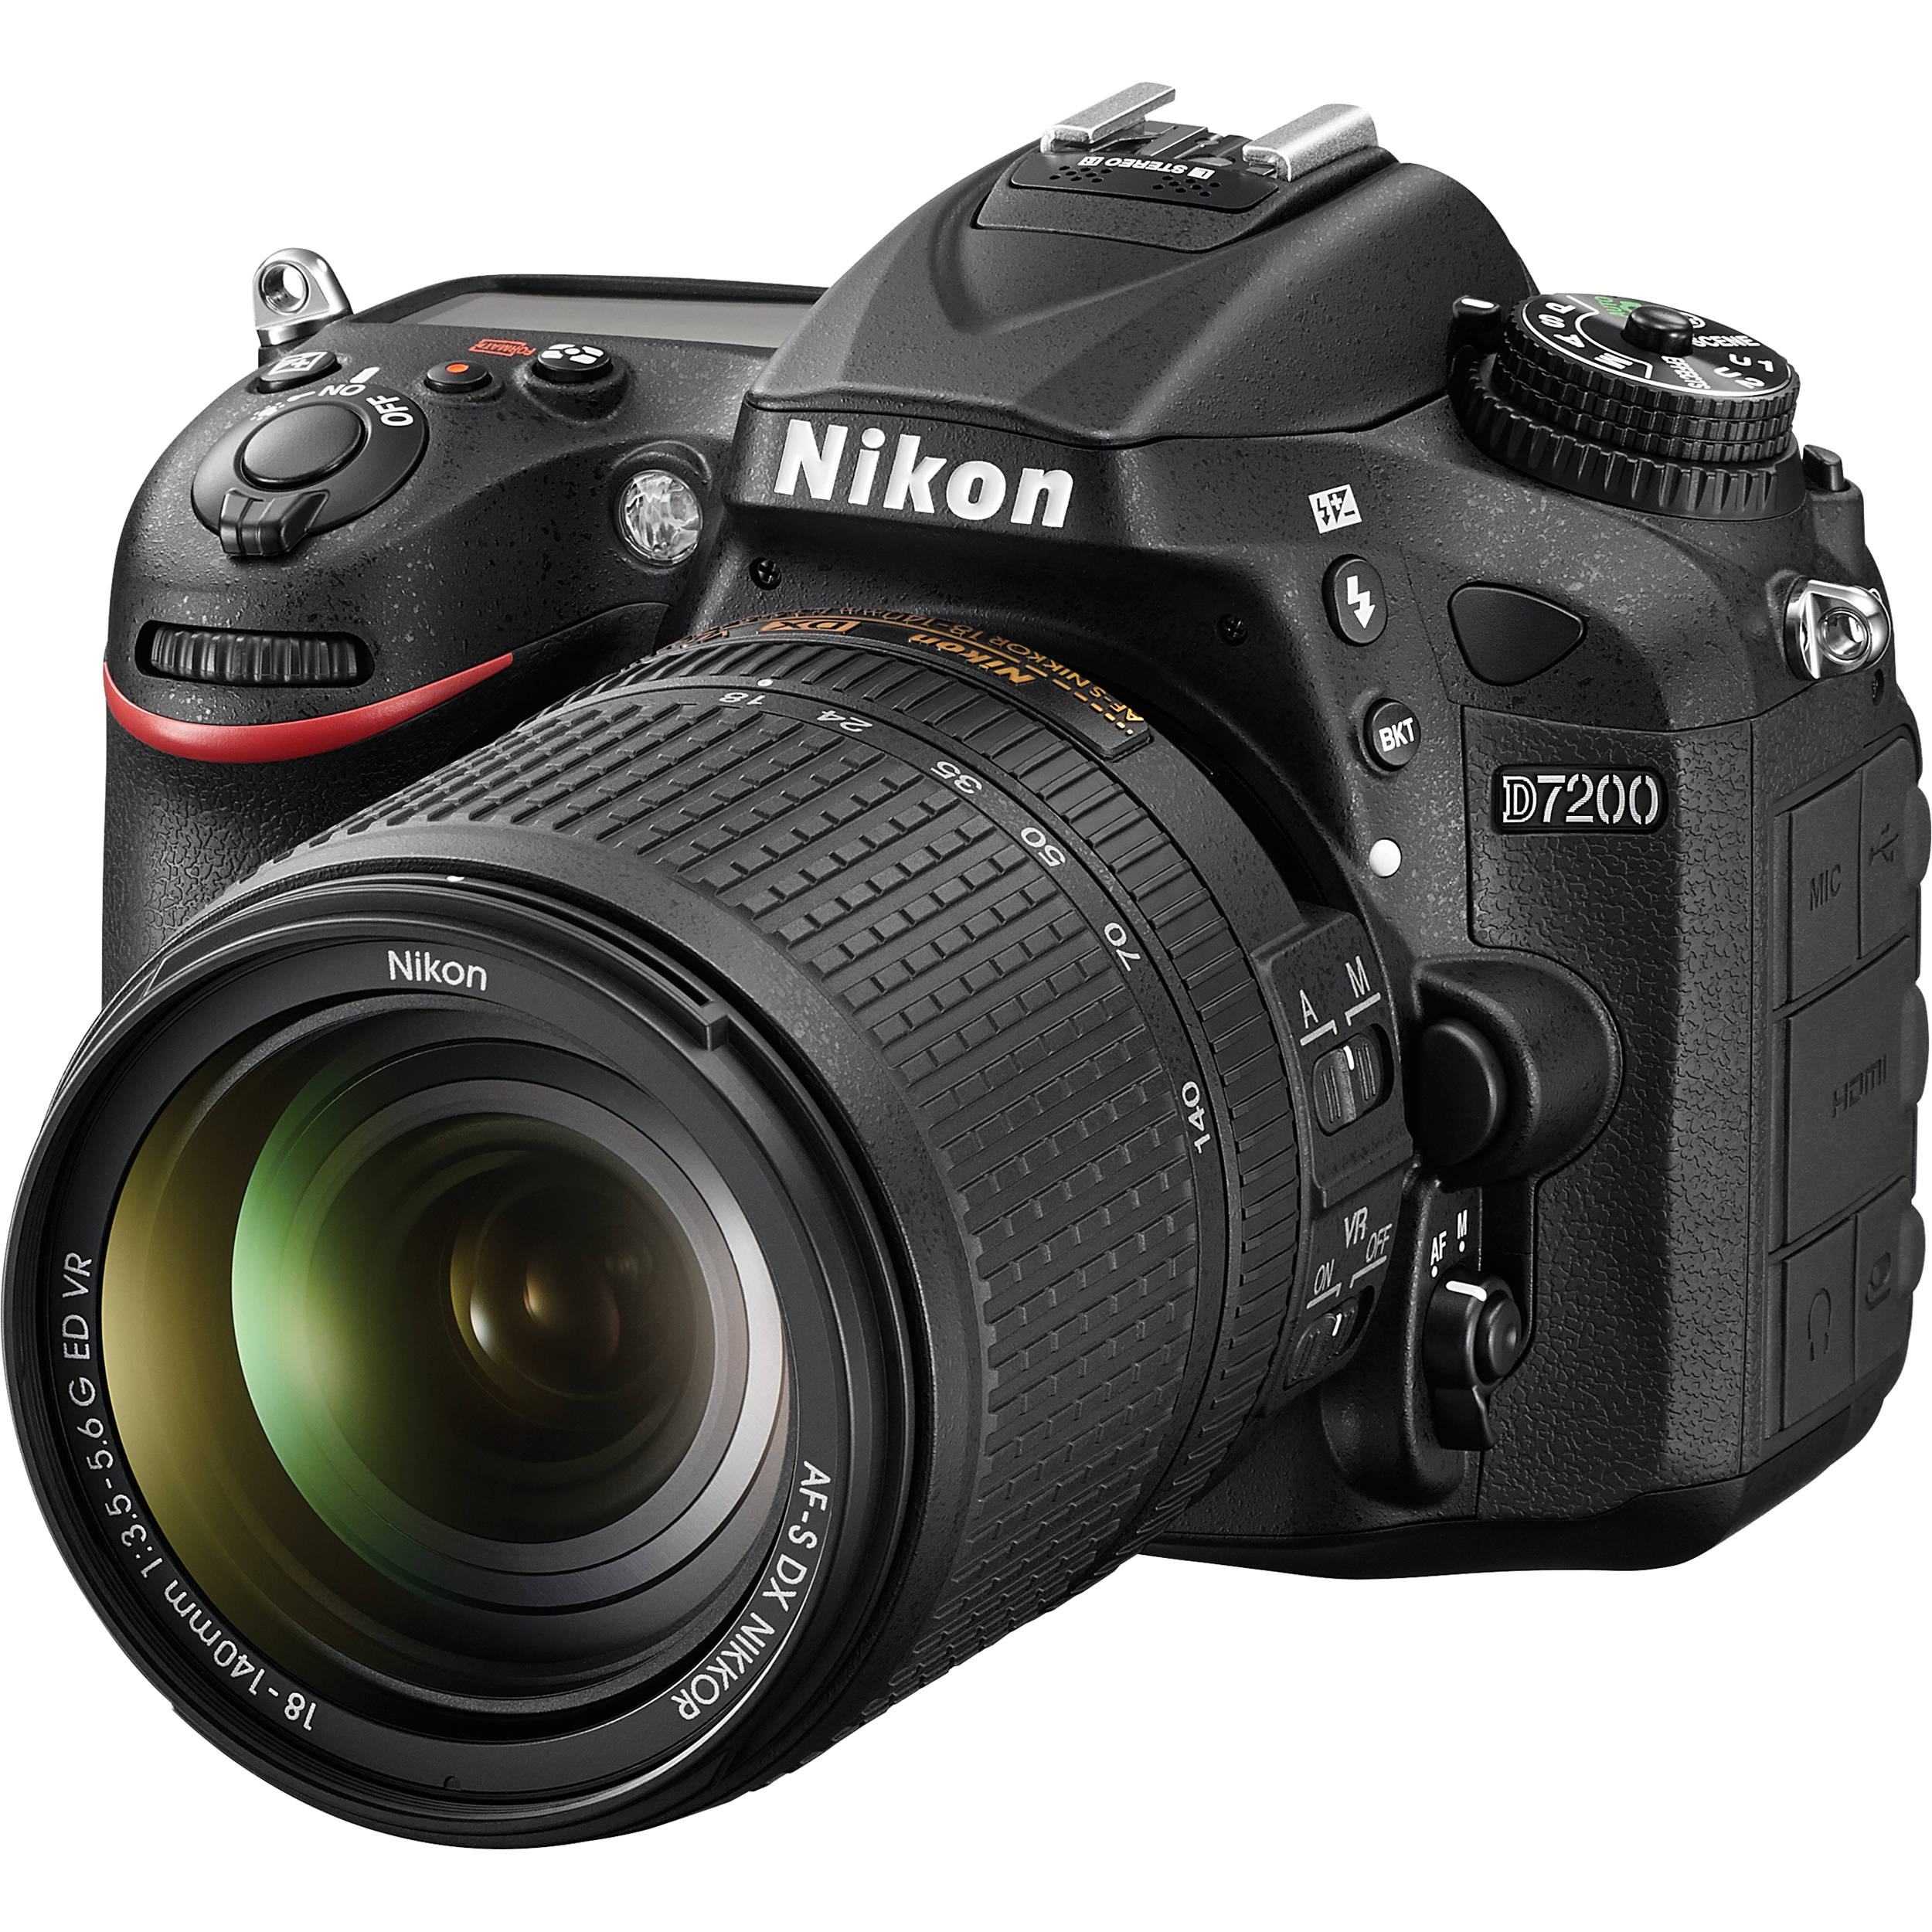 nikon d7200 replacement for nikon d7100 b h photo video rh bhphotovideo com manual em portugues da nikon d7000 nikon d7000 manual em portugues download